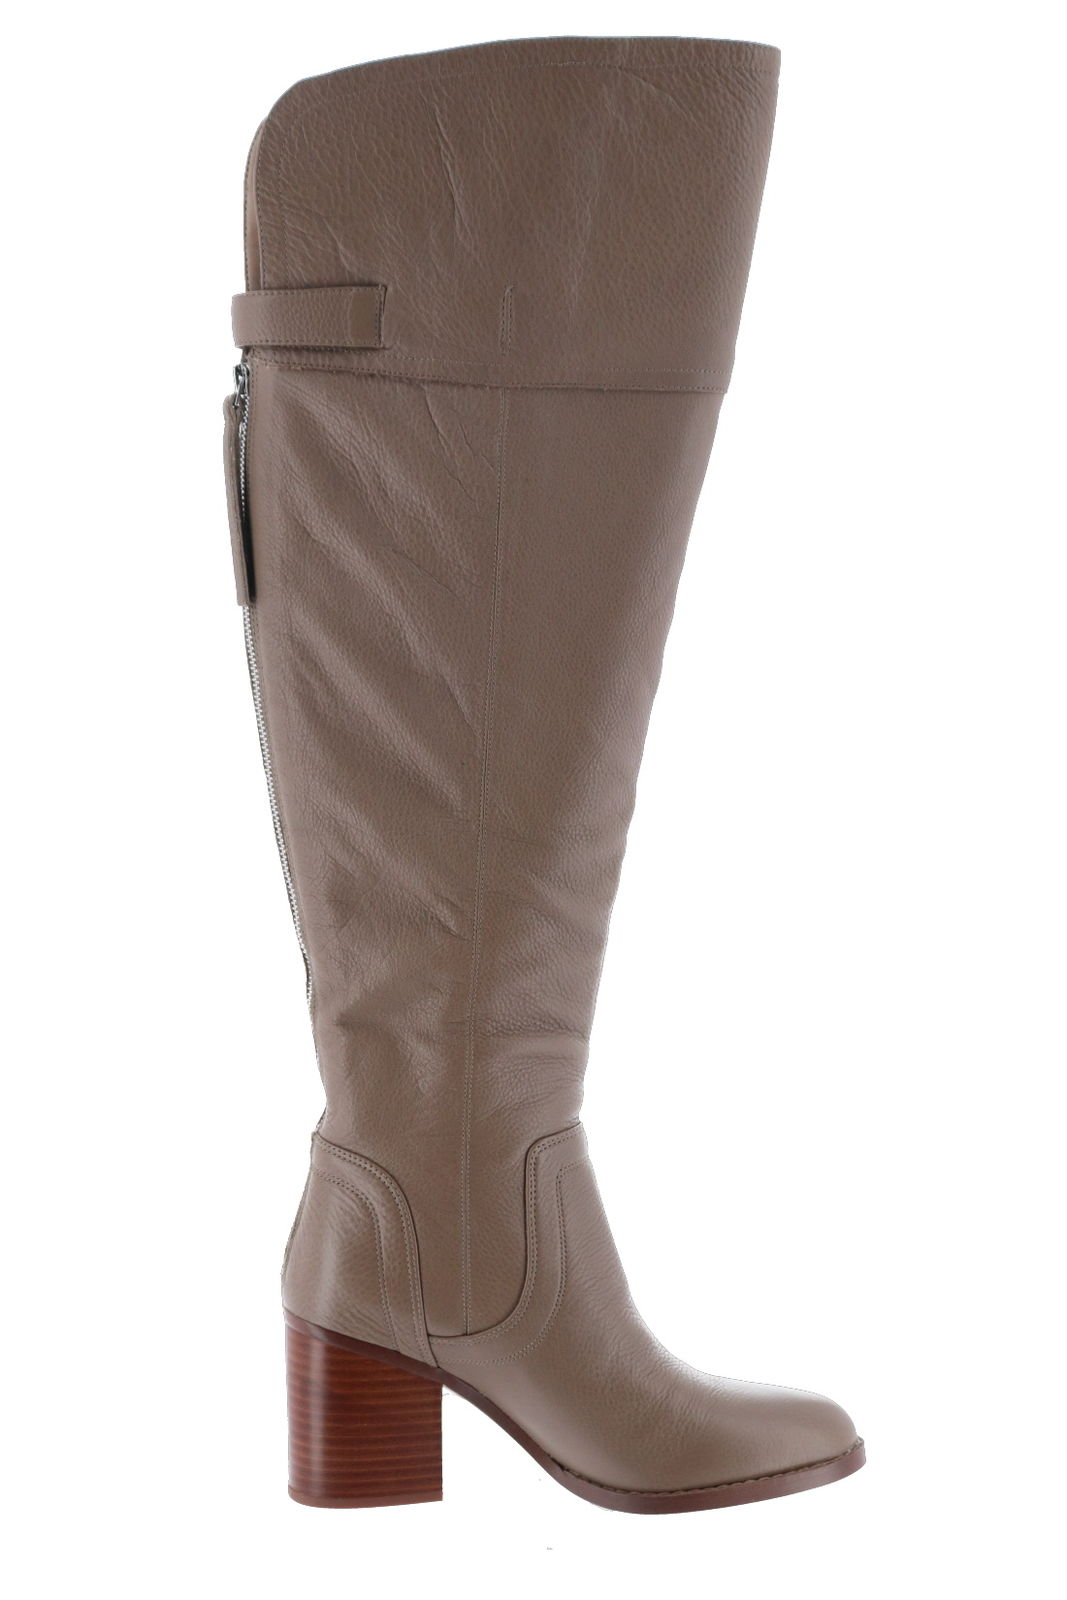 Franco Sarto Wide Calf Leather Over-Knee Boots Ollie A298320 by